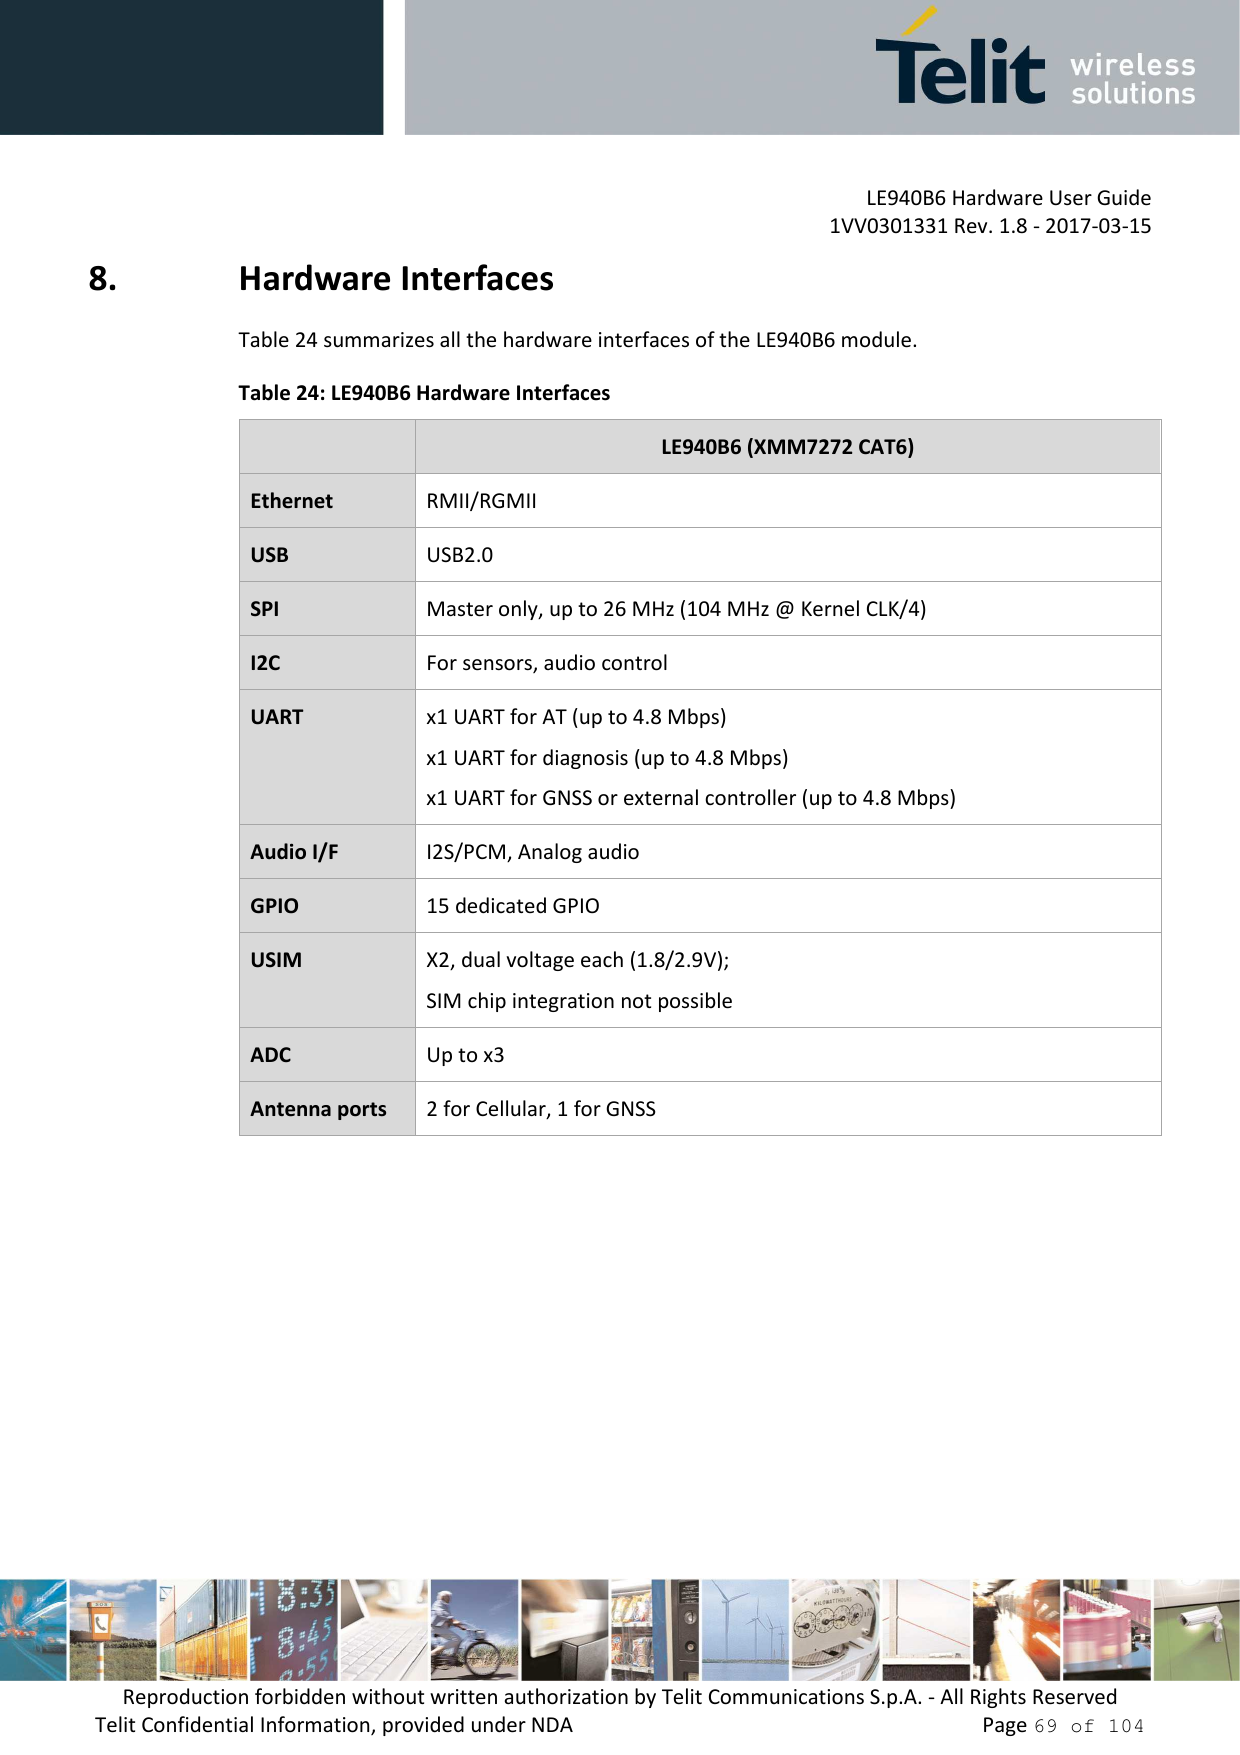 LE940B6 Hardware User Guide     1VV0301331 Rev. 1.8 - 2017-03-15 Reproduction forbidden without written authorization by Telit Communications S.p.A. - All Rights Reserved Telit Confidential Information, provided under NDA                 Page 69 of 104 8. Hardware Interfaces Table 24 summarizes all the hardware interfaces of the LE940B6 module. Table 24: LE940B6 Hardware Interfaces   LE940B6 (XMM7272 CAT6) Ethernet  RMII/RGMII  USB  USB2.0 SPI  Master only, up to 26 MHz (104 MHz @ Kernel CLK/4) I2C  For sensors, audio control UART  x1 UART for AT (up to 4.8 Mbps) x1 UART for diagnosis (up to 4.8 Mbps) x1 UART for GNSS or external controller (up to 4.8 Mbps) Audio I/F  I2S/PCM, Analog audio GPIO  15 dedicated GPIO USIM  X2, dual voltage each (1.8/2.9V);  SIM chip integration not possible ADC  Up to x3 Antenna ports  2 for Cellular, 1 for GNSS